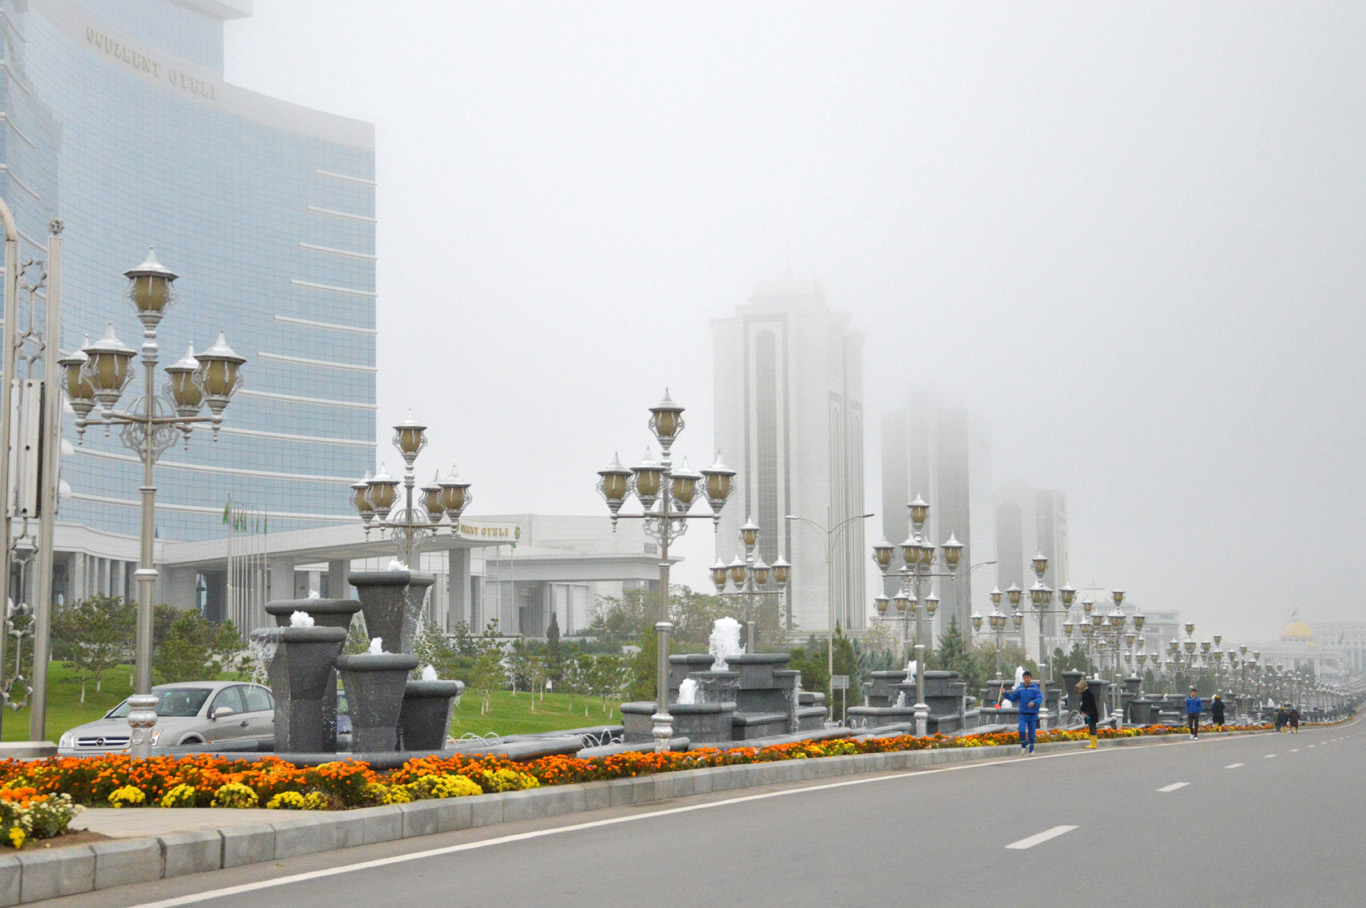 Skyscrapers covered with fog - Street cleaners visible on the left